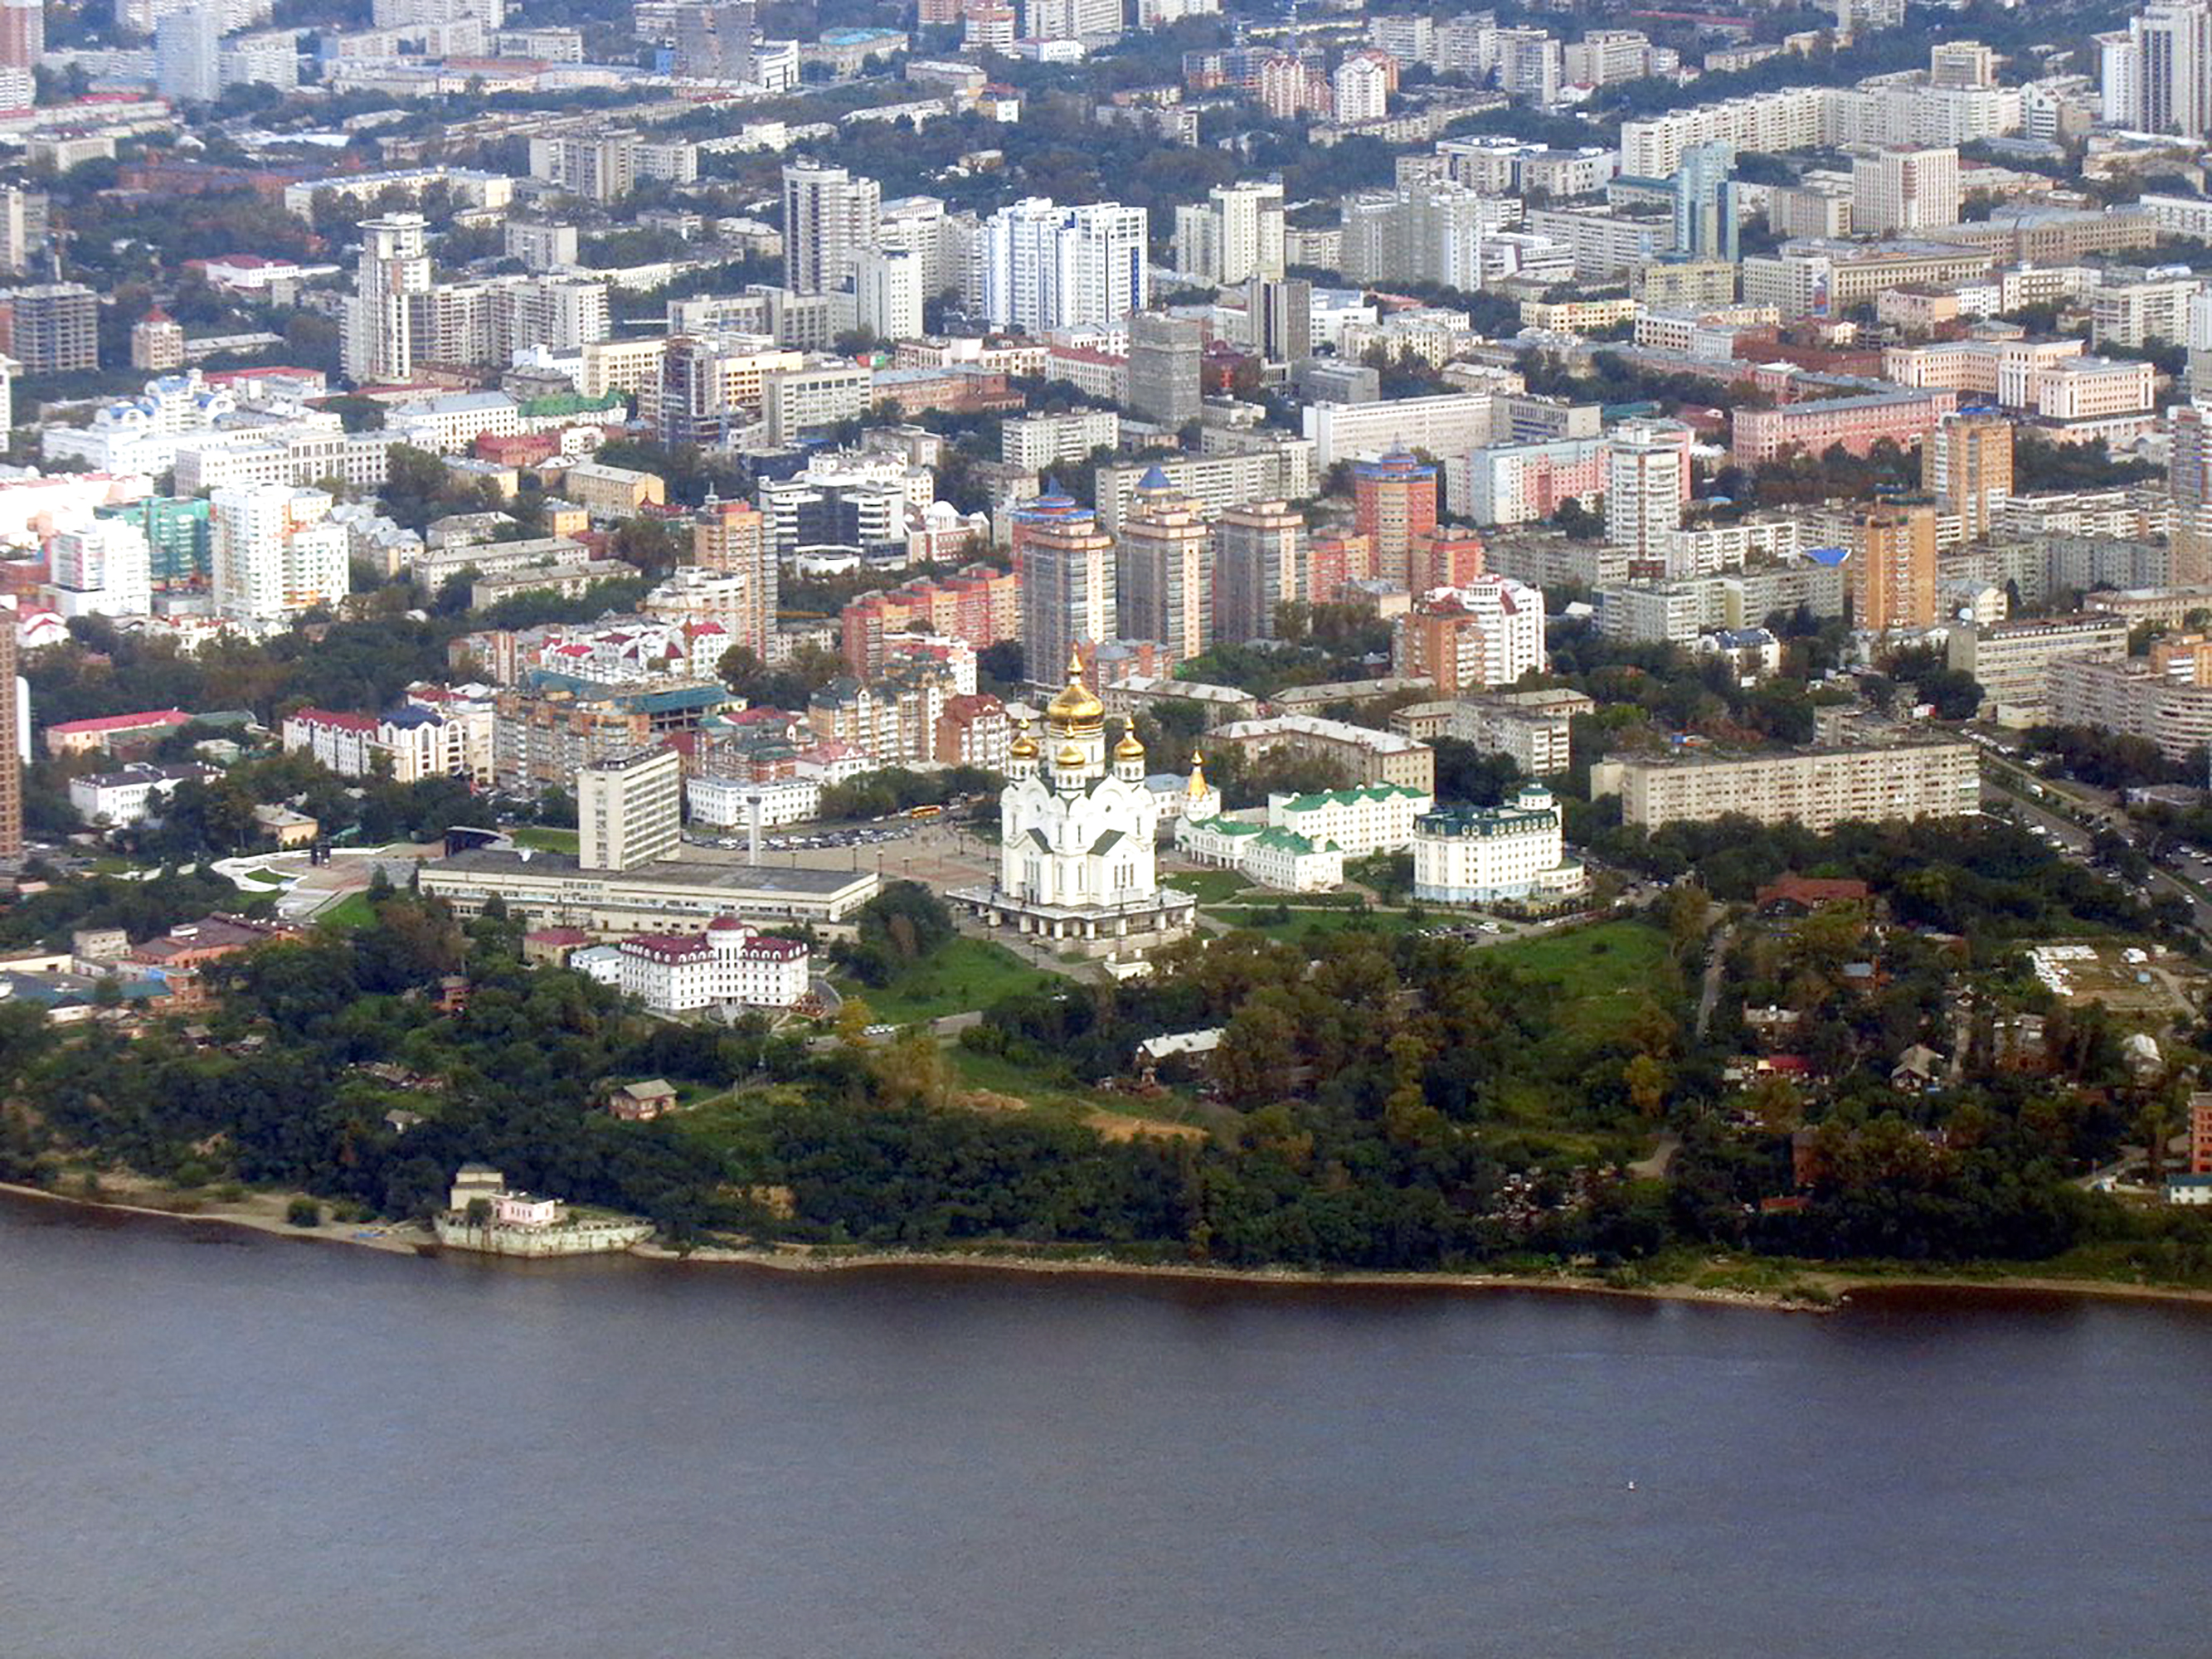 The city of Khabarovsk. Credit: East2West News